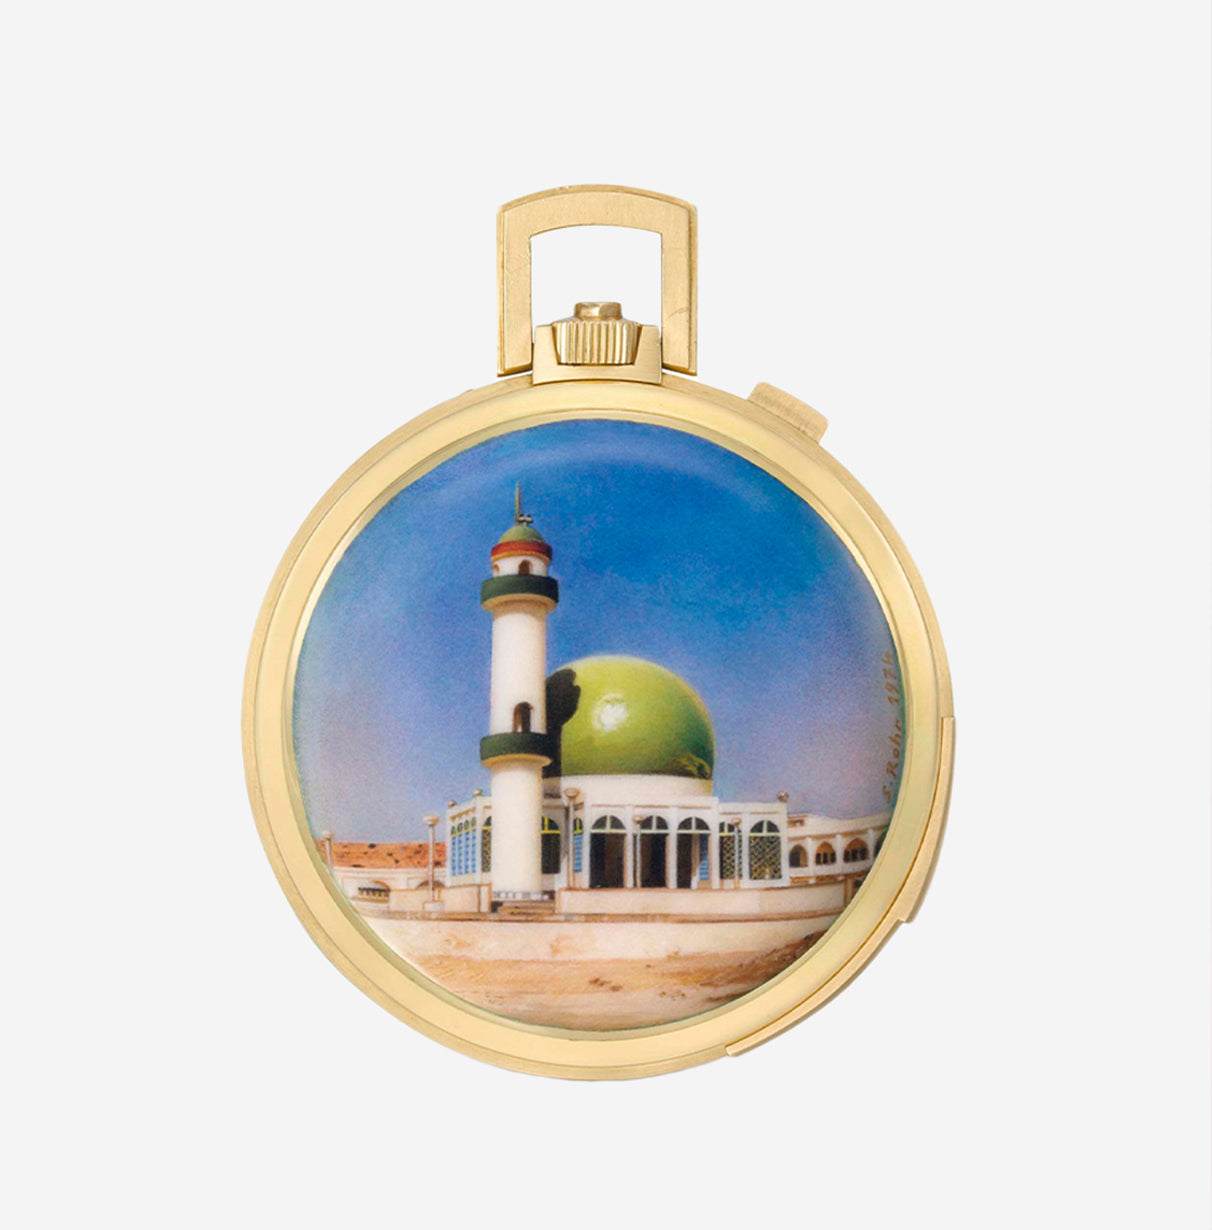 Pocket watch enamelled by Suzanne Rohr in The Art of Enamel Dials for A Collected Man London